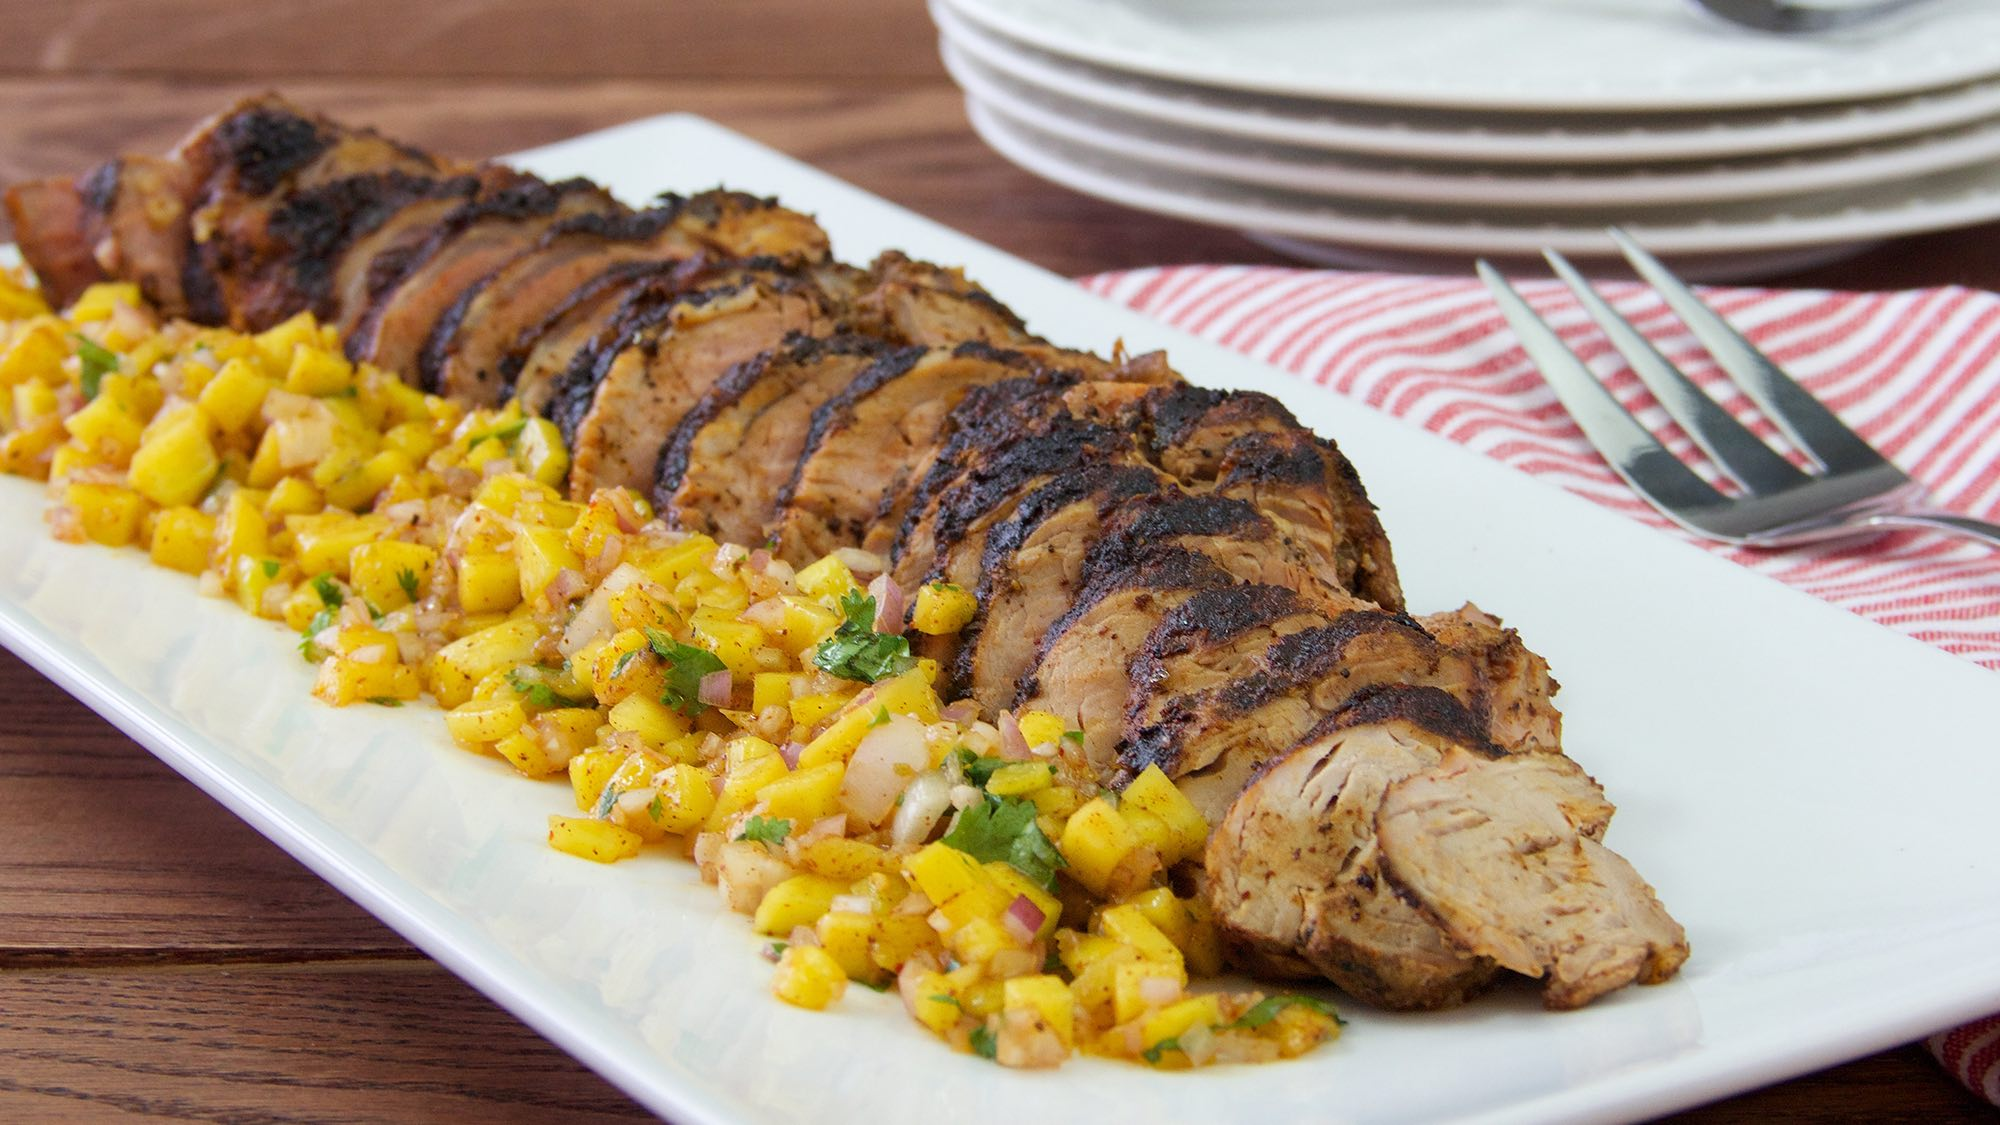 gluten-free-chili-rubbed-pork-with-mango-salsa.jpg